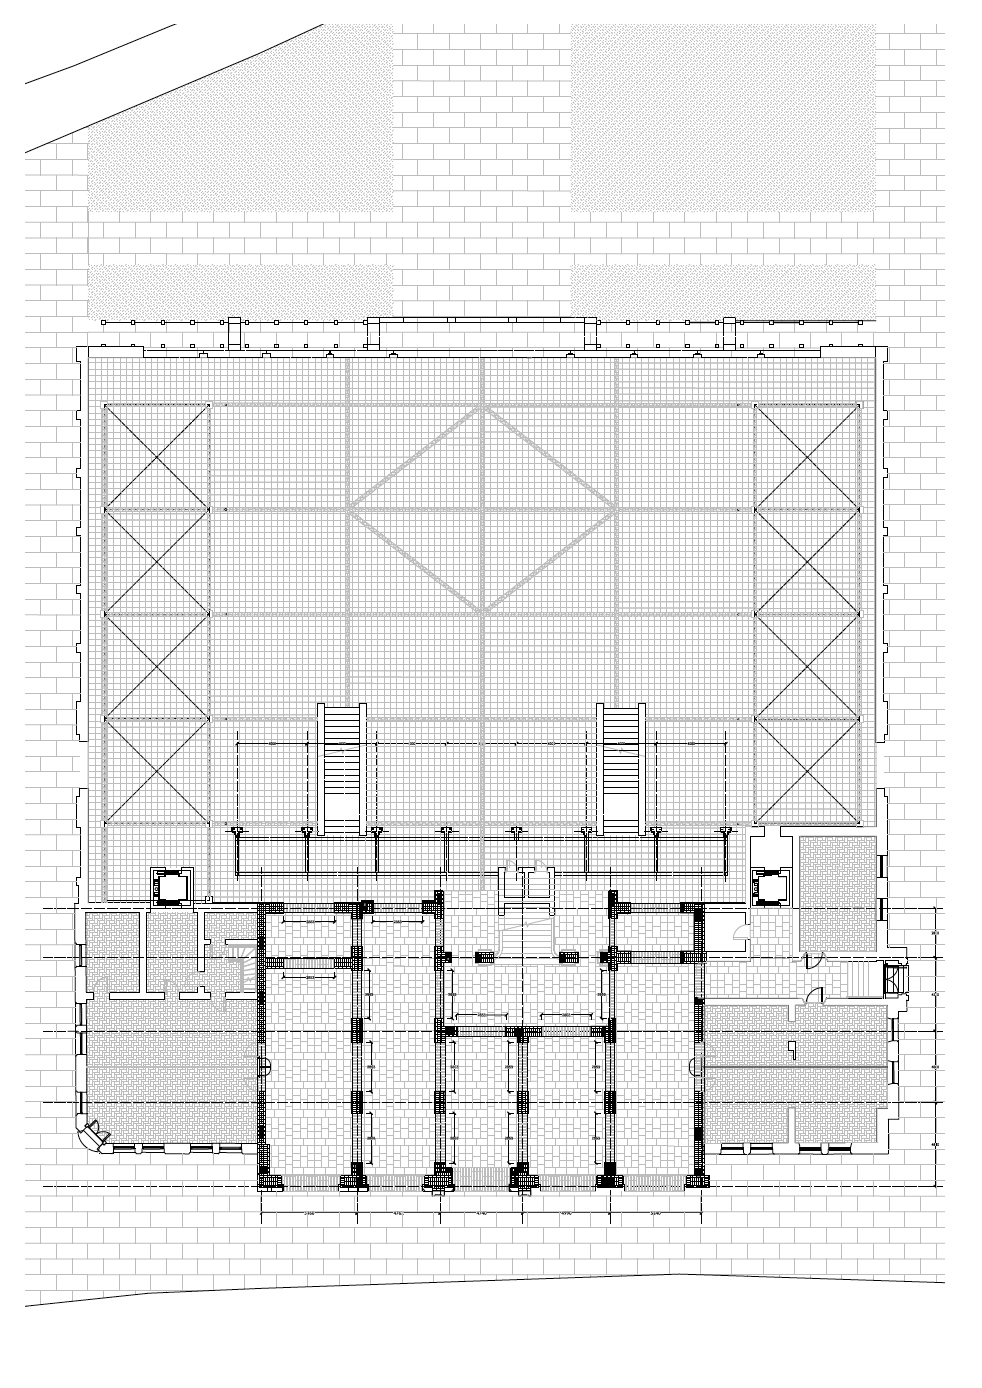 Proposal to open up the ground floor of the Town Hall to connect it to Market at the rear